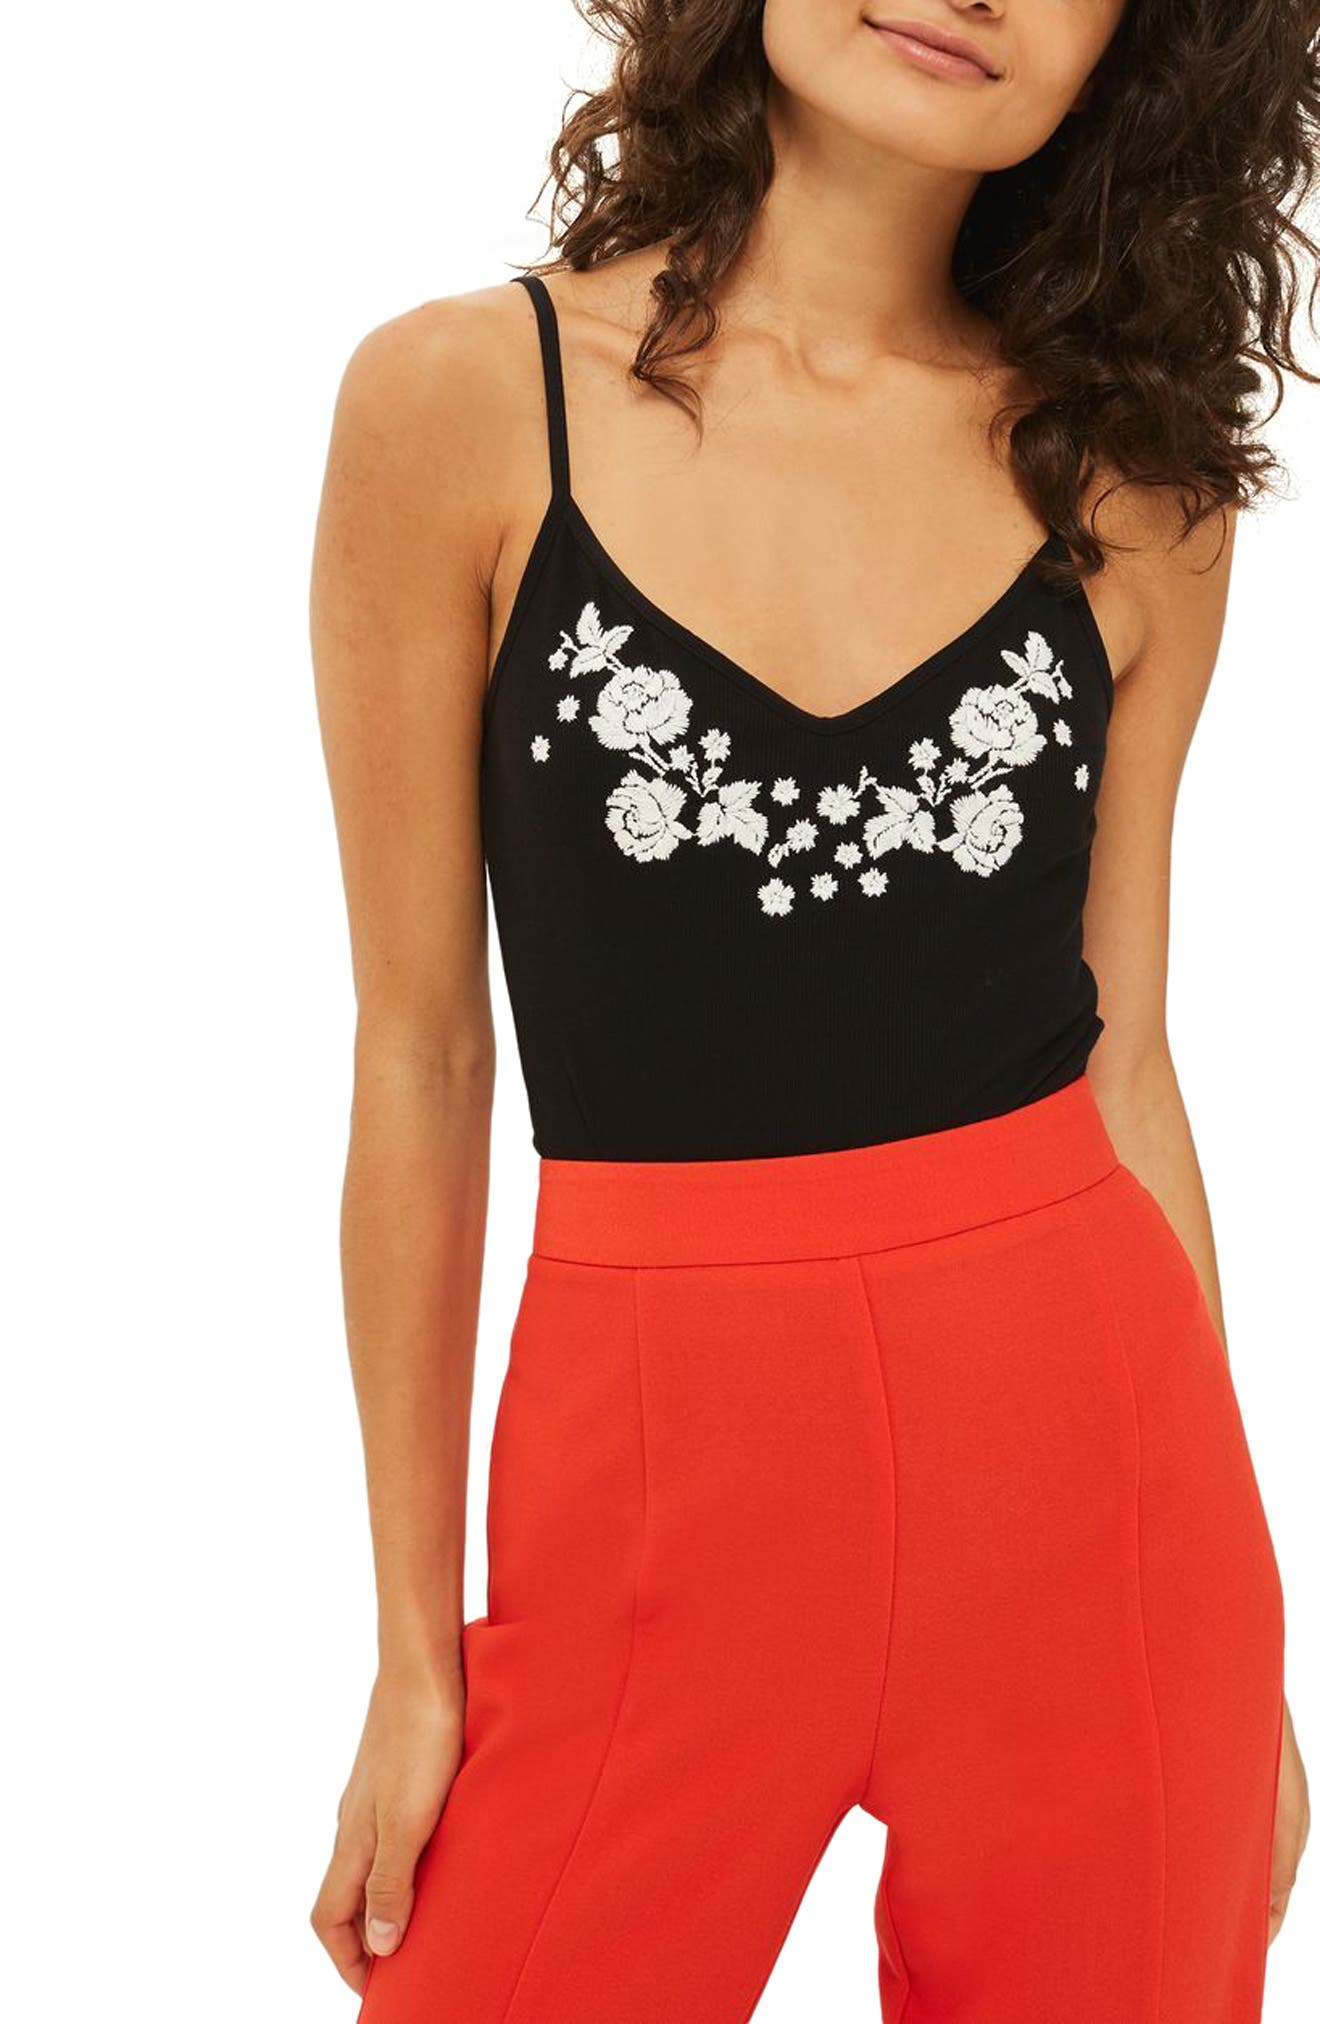 Main Image - Topshop Embroidered Tie Back Bodysuit (Regular & Petite)